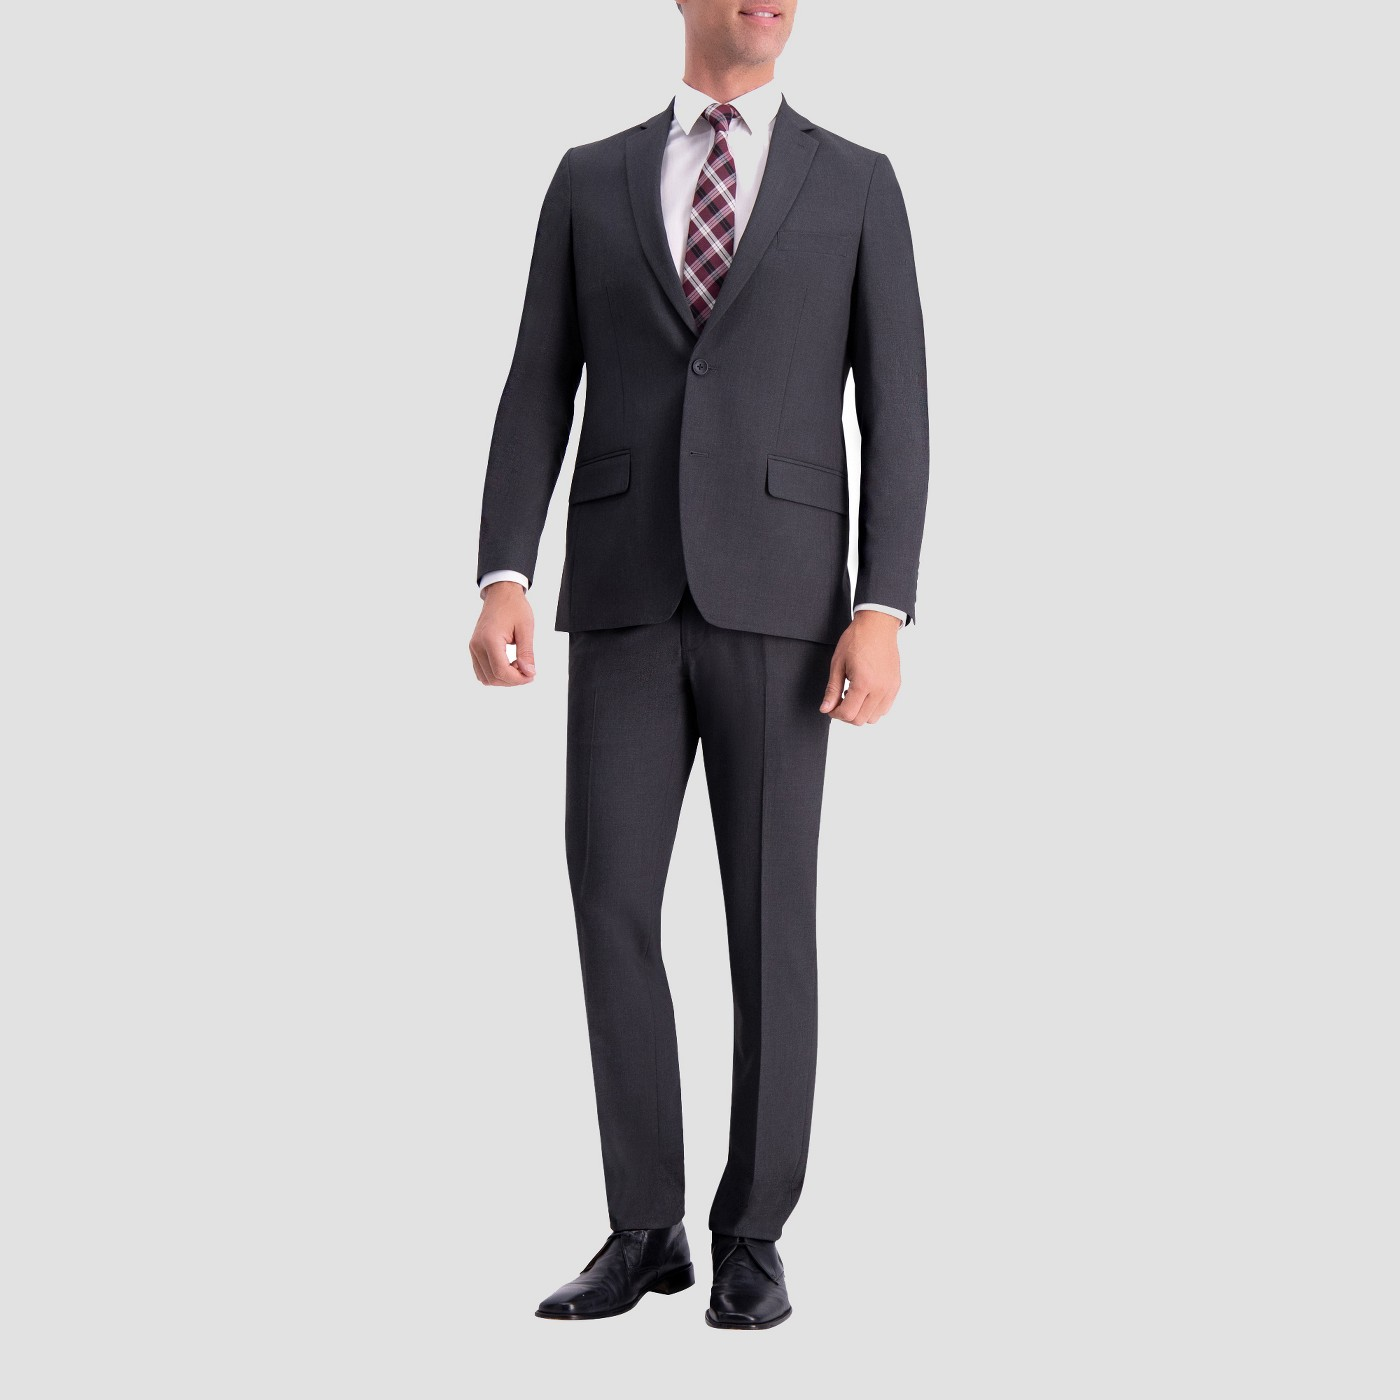 Haggar H26 Slim Fit Premium Stretch Suit Jacket - Charcoal Heather - image 1 of 2